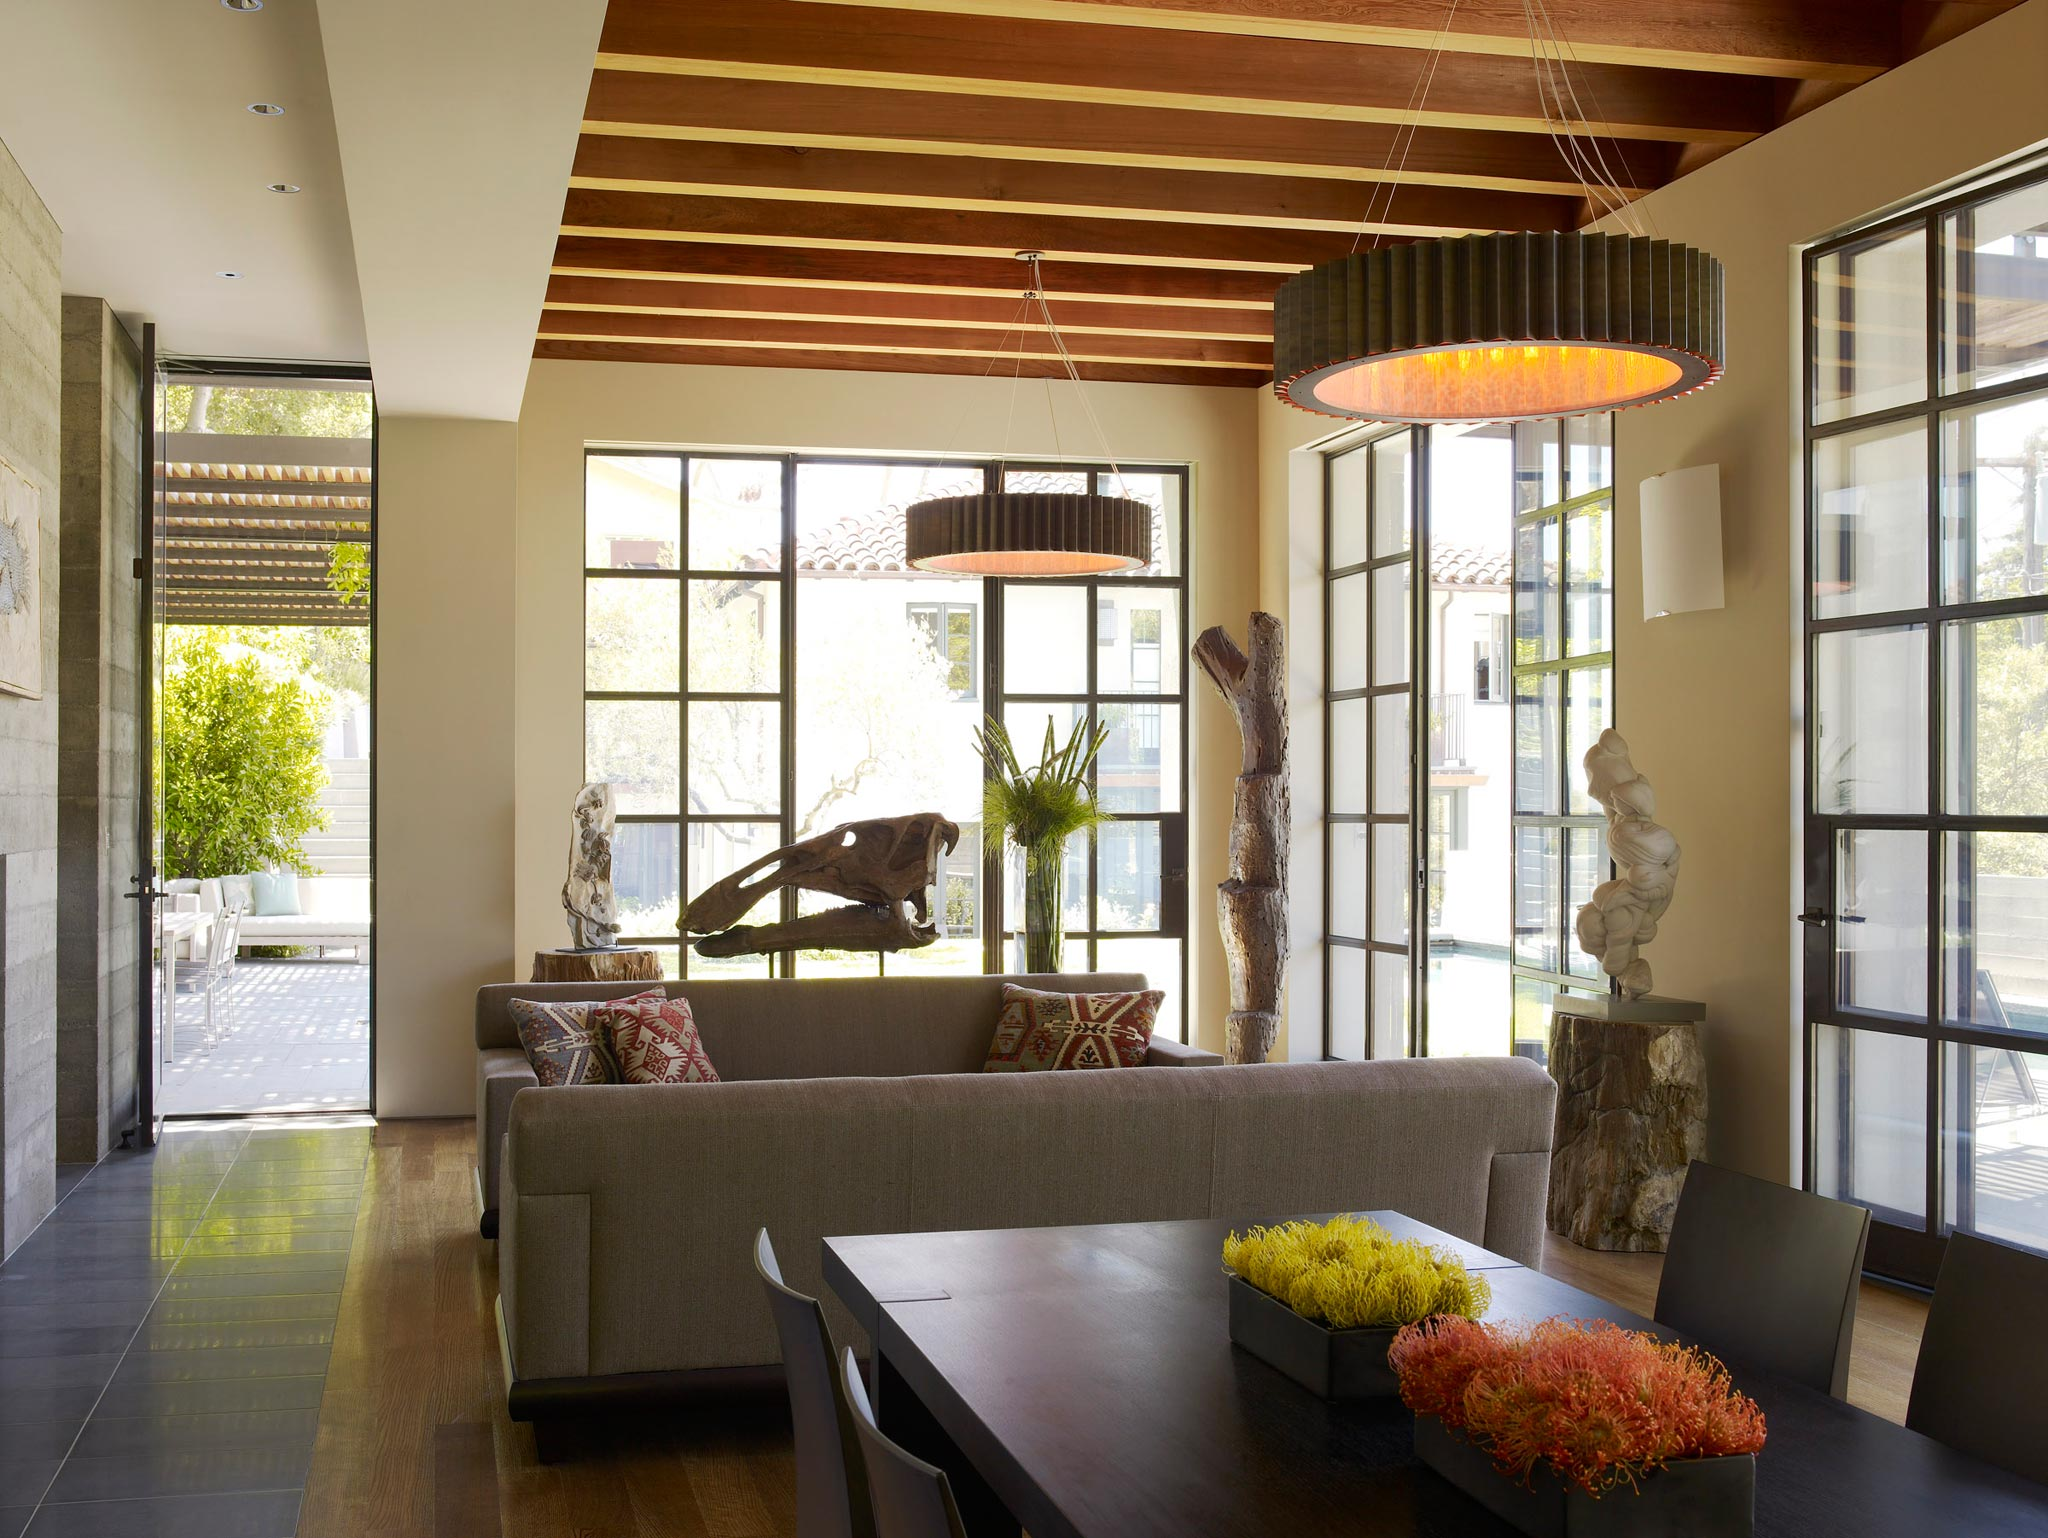 Claremont modern aesthetic pavillon house guest inside area of living space